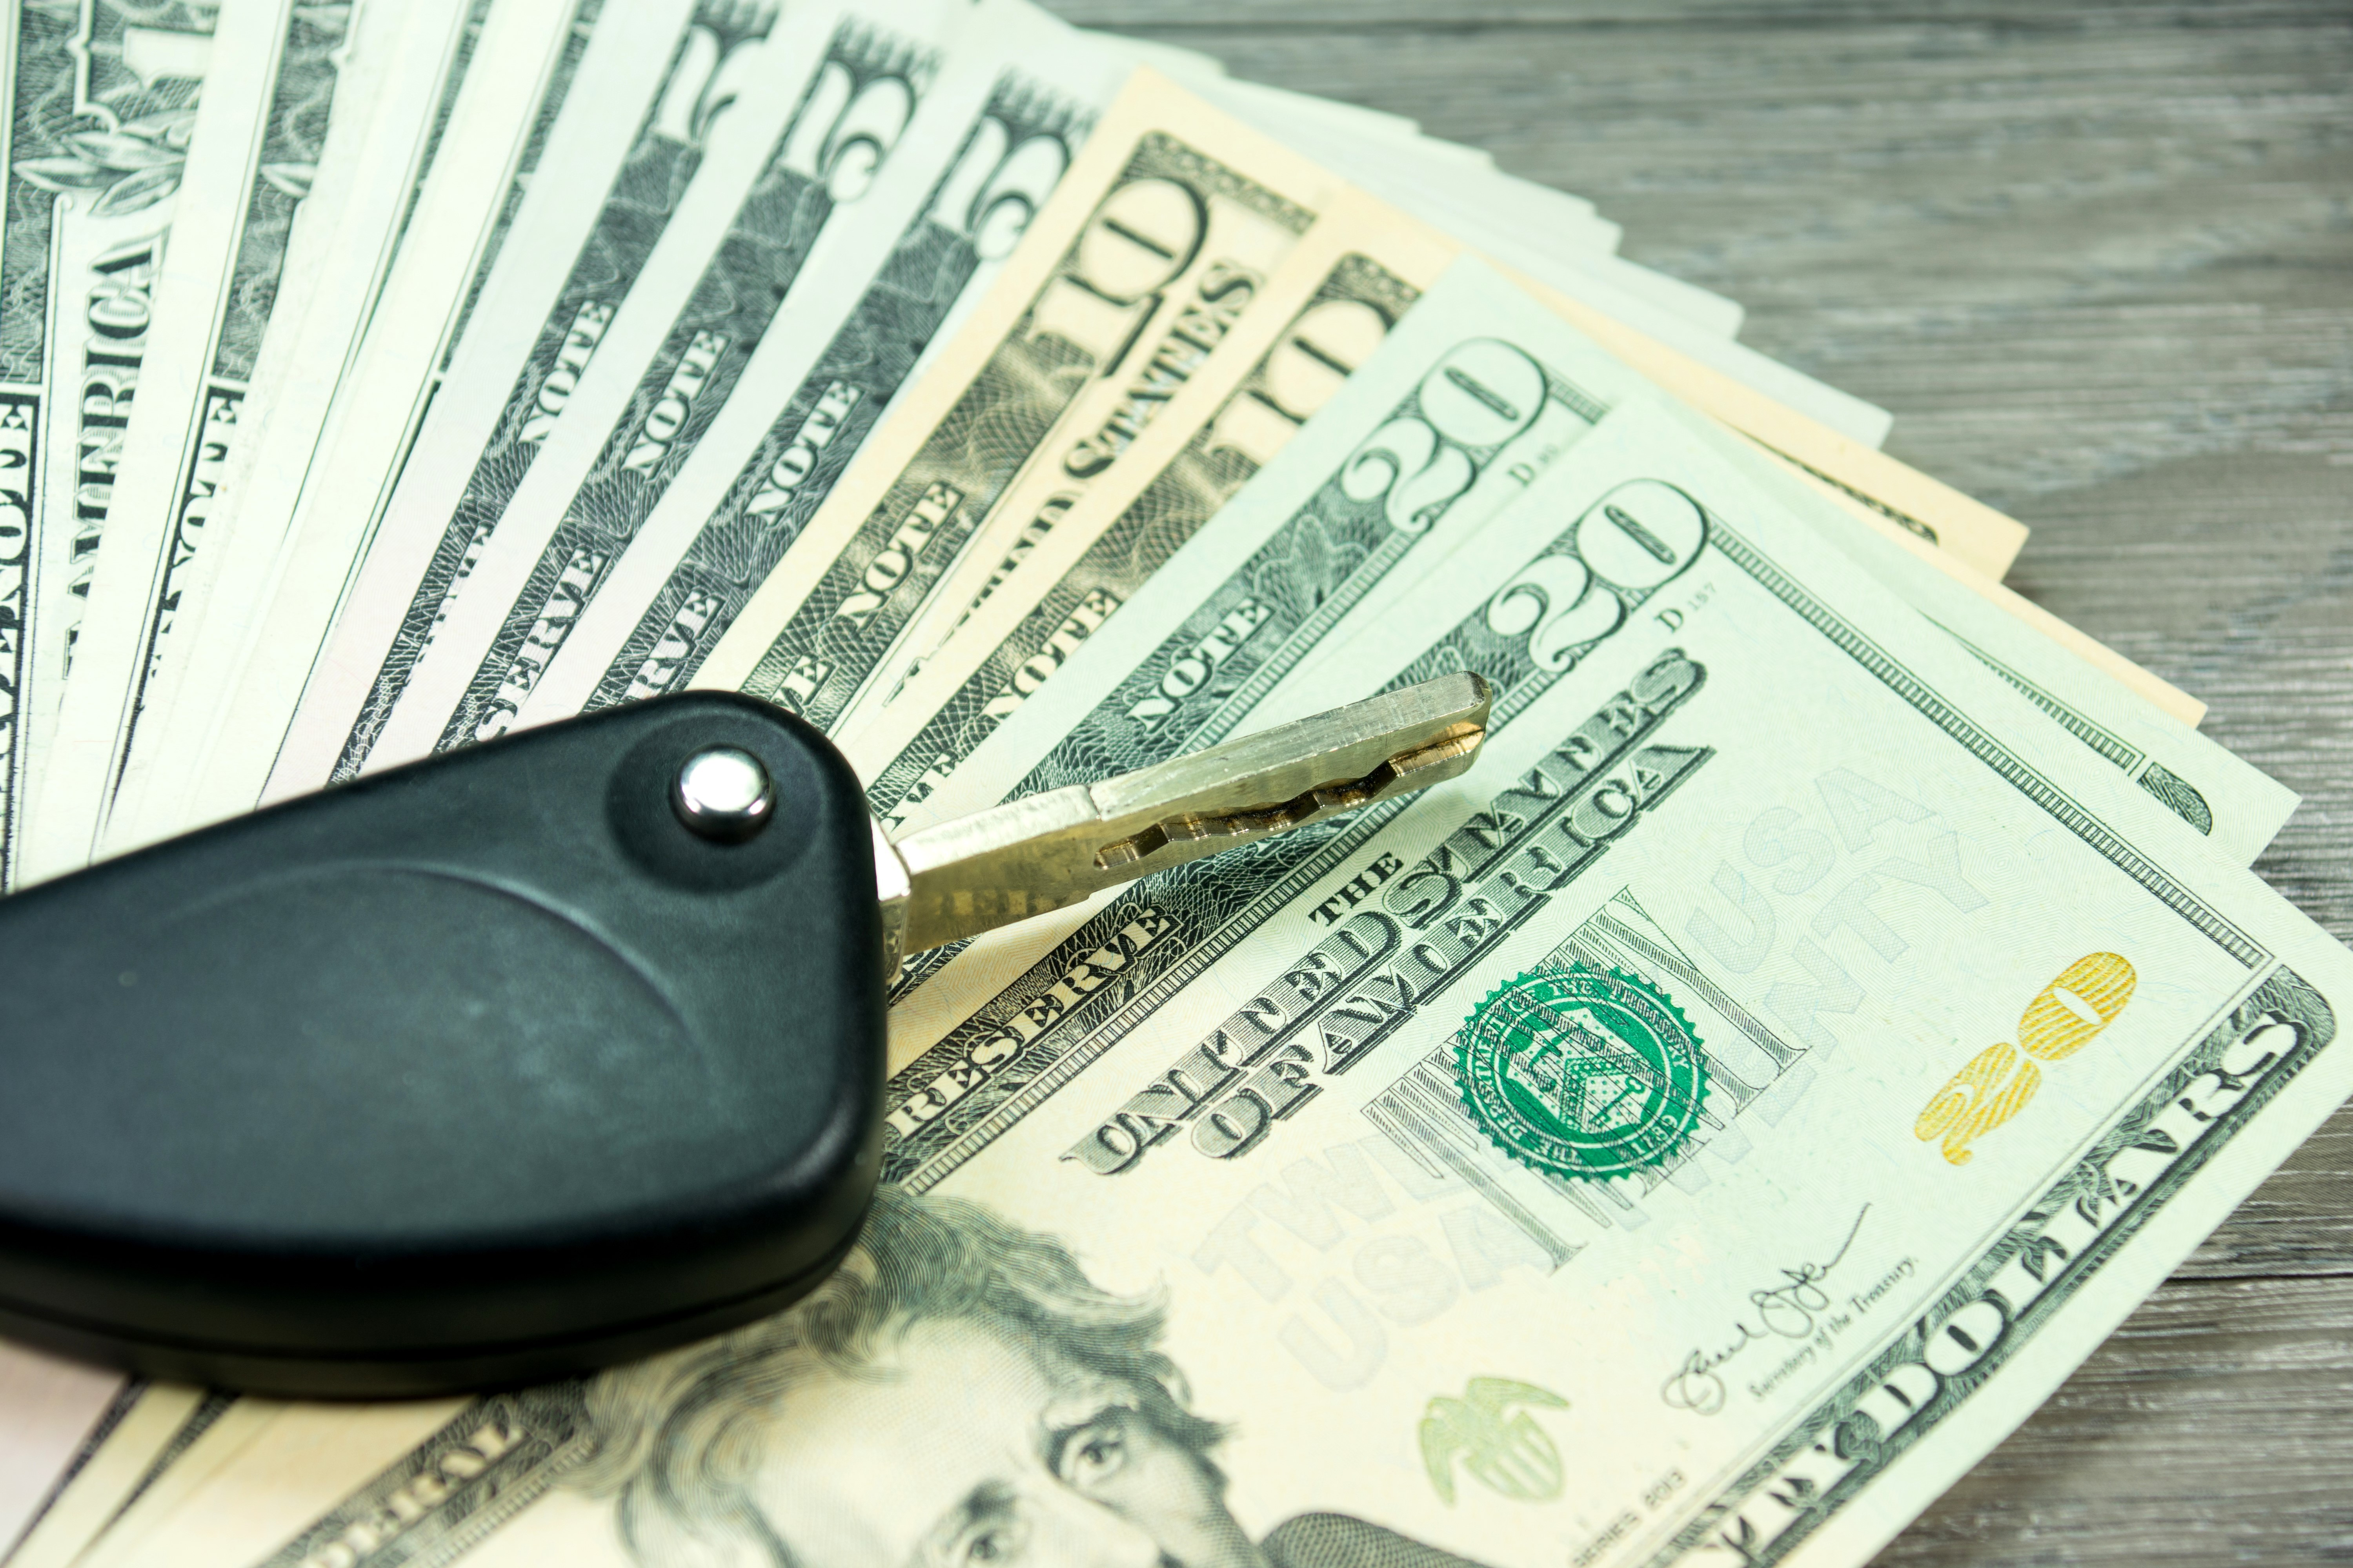 Car buying - Suze Orman Financial Expert